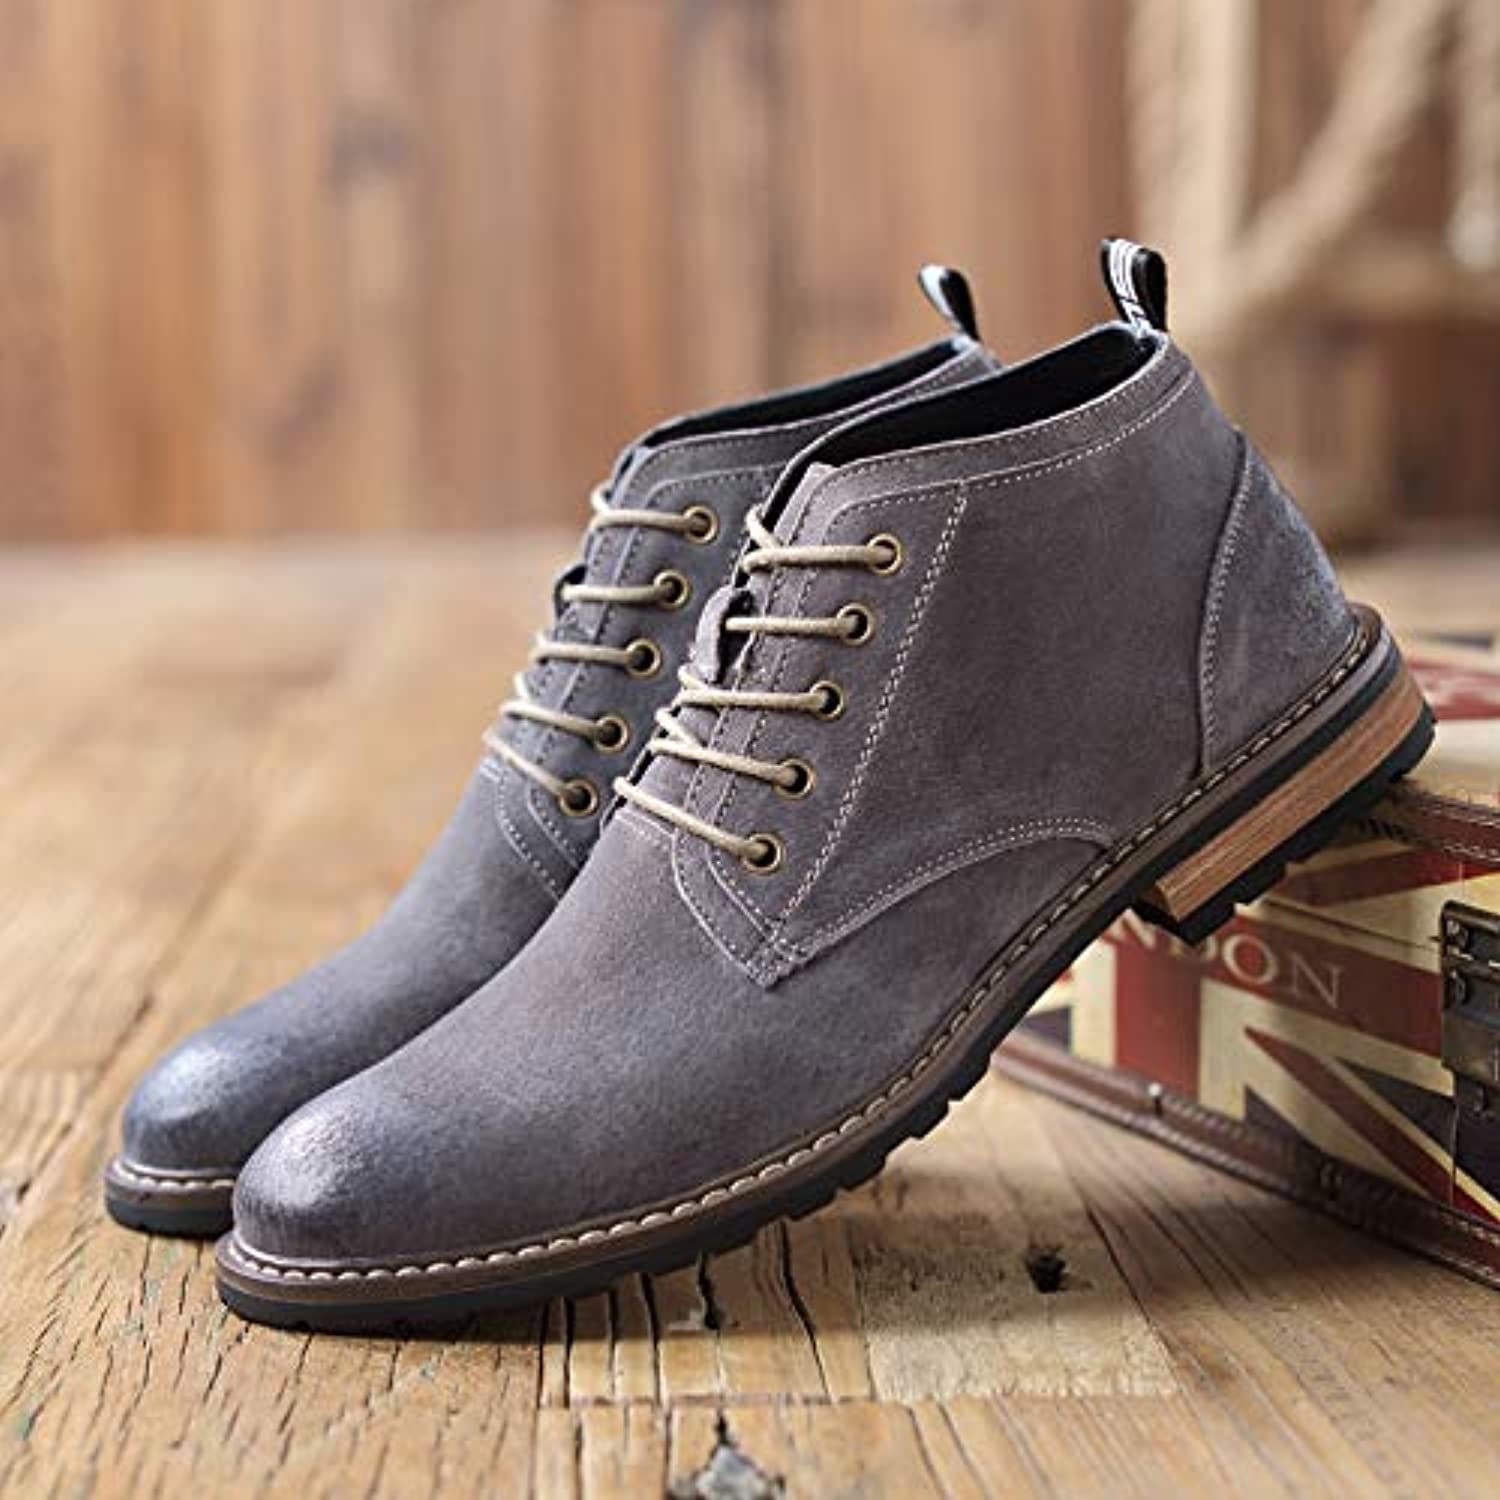 ZyuQ Ankle boots Martin Boots Men'S High Boots Fashion Business Retro To Help Fall Pointed shoes Pu Boots Men